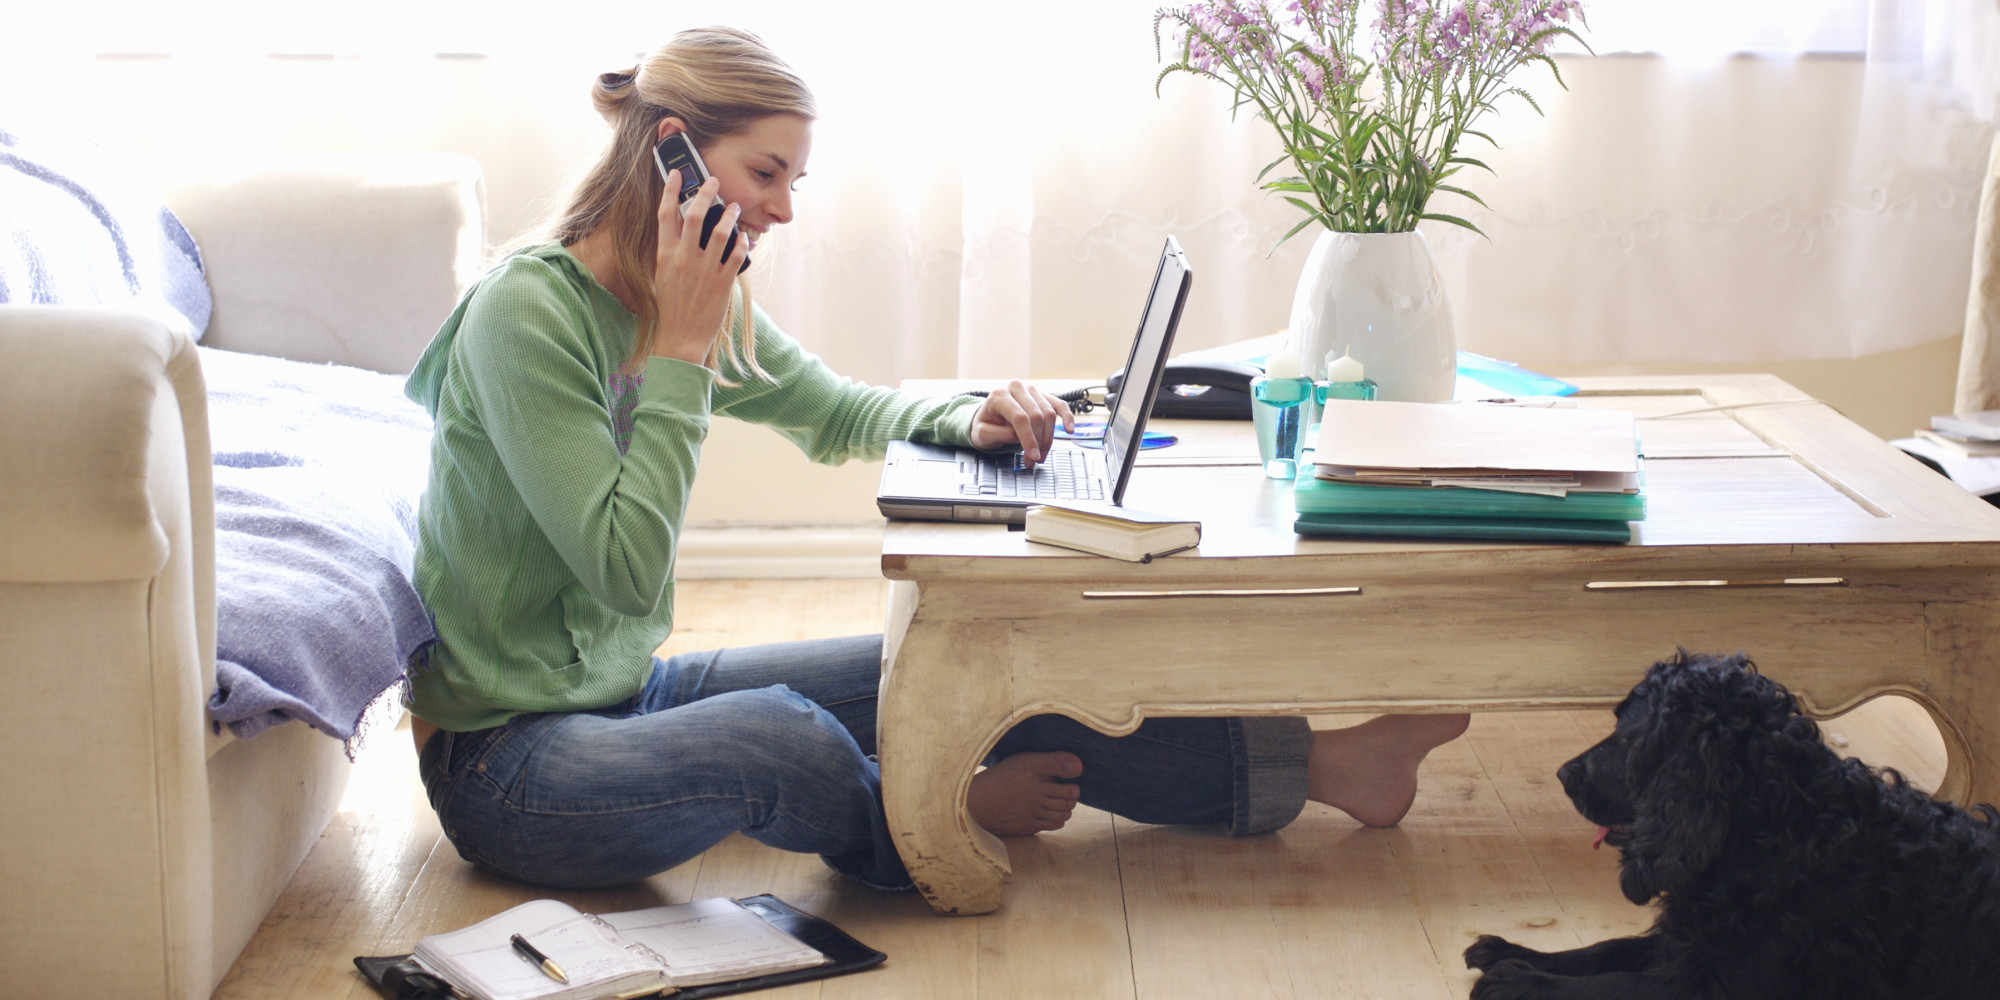 Do Not Sit Anywhere at Home to Work